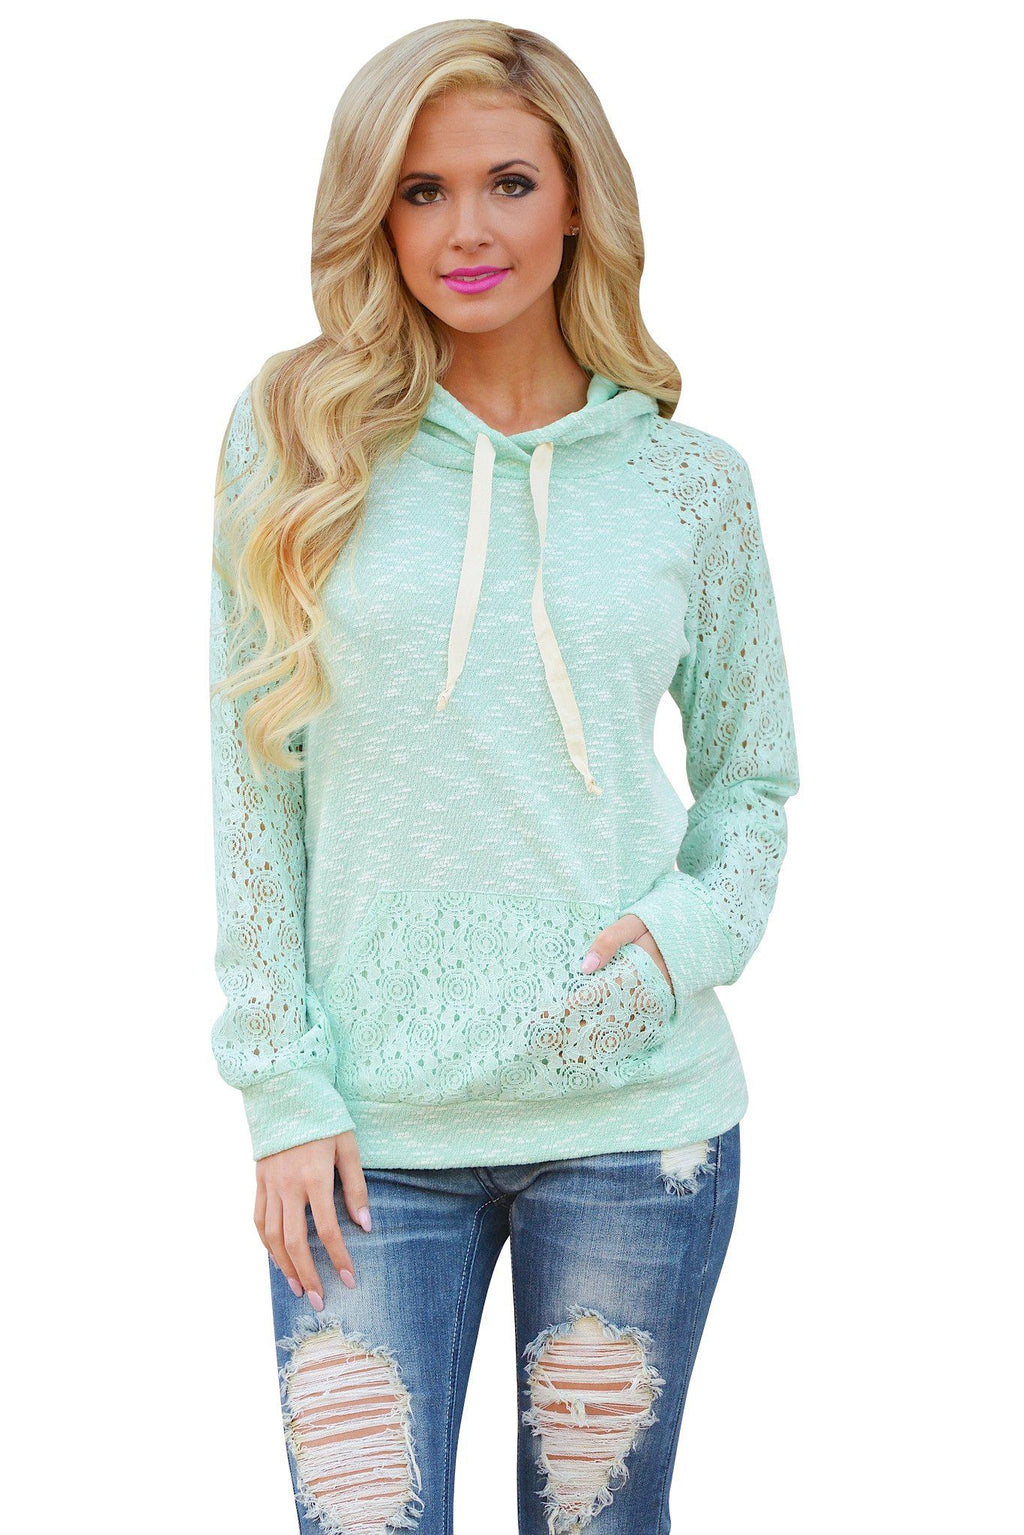 Light Green Lace Accent Kangaroo Pocket Hoodie - KaleaBoutique.com